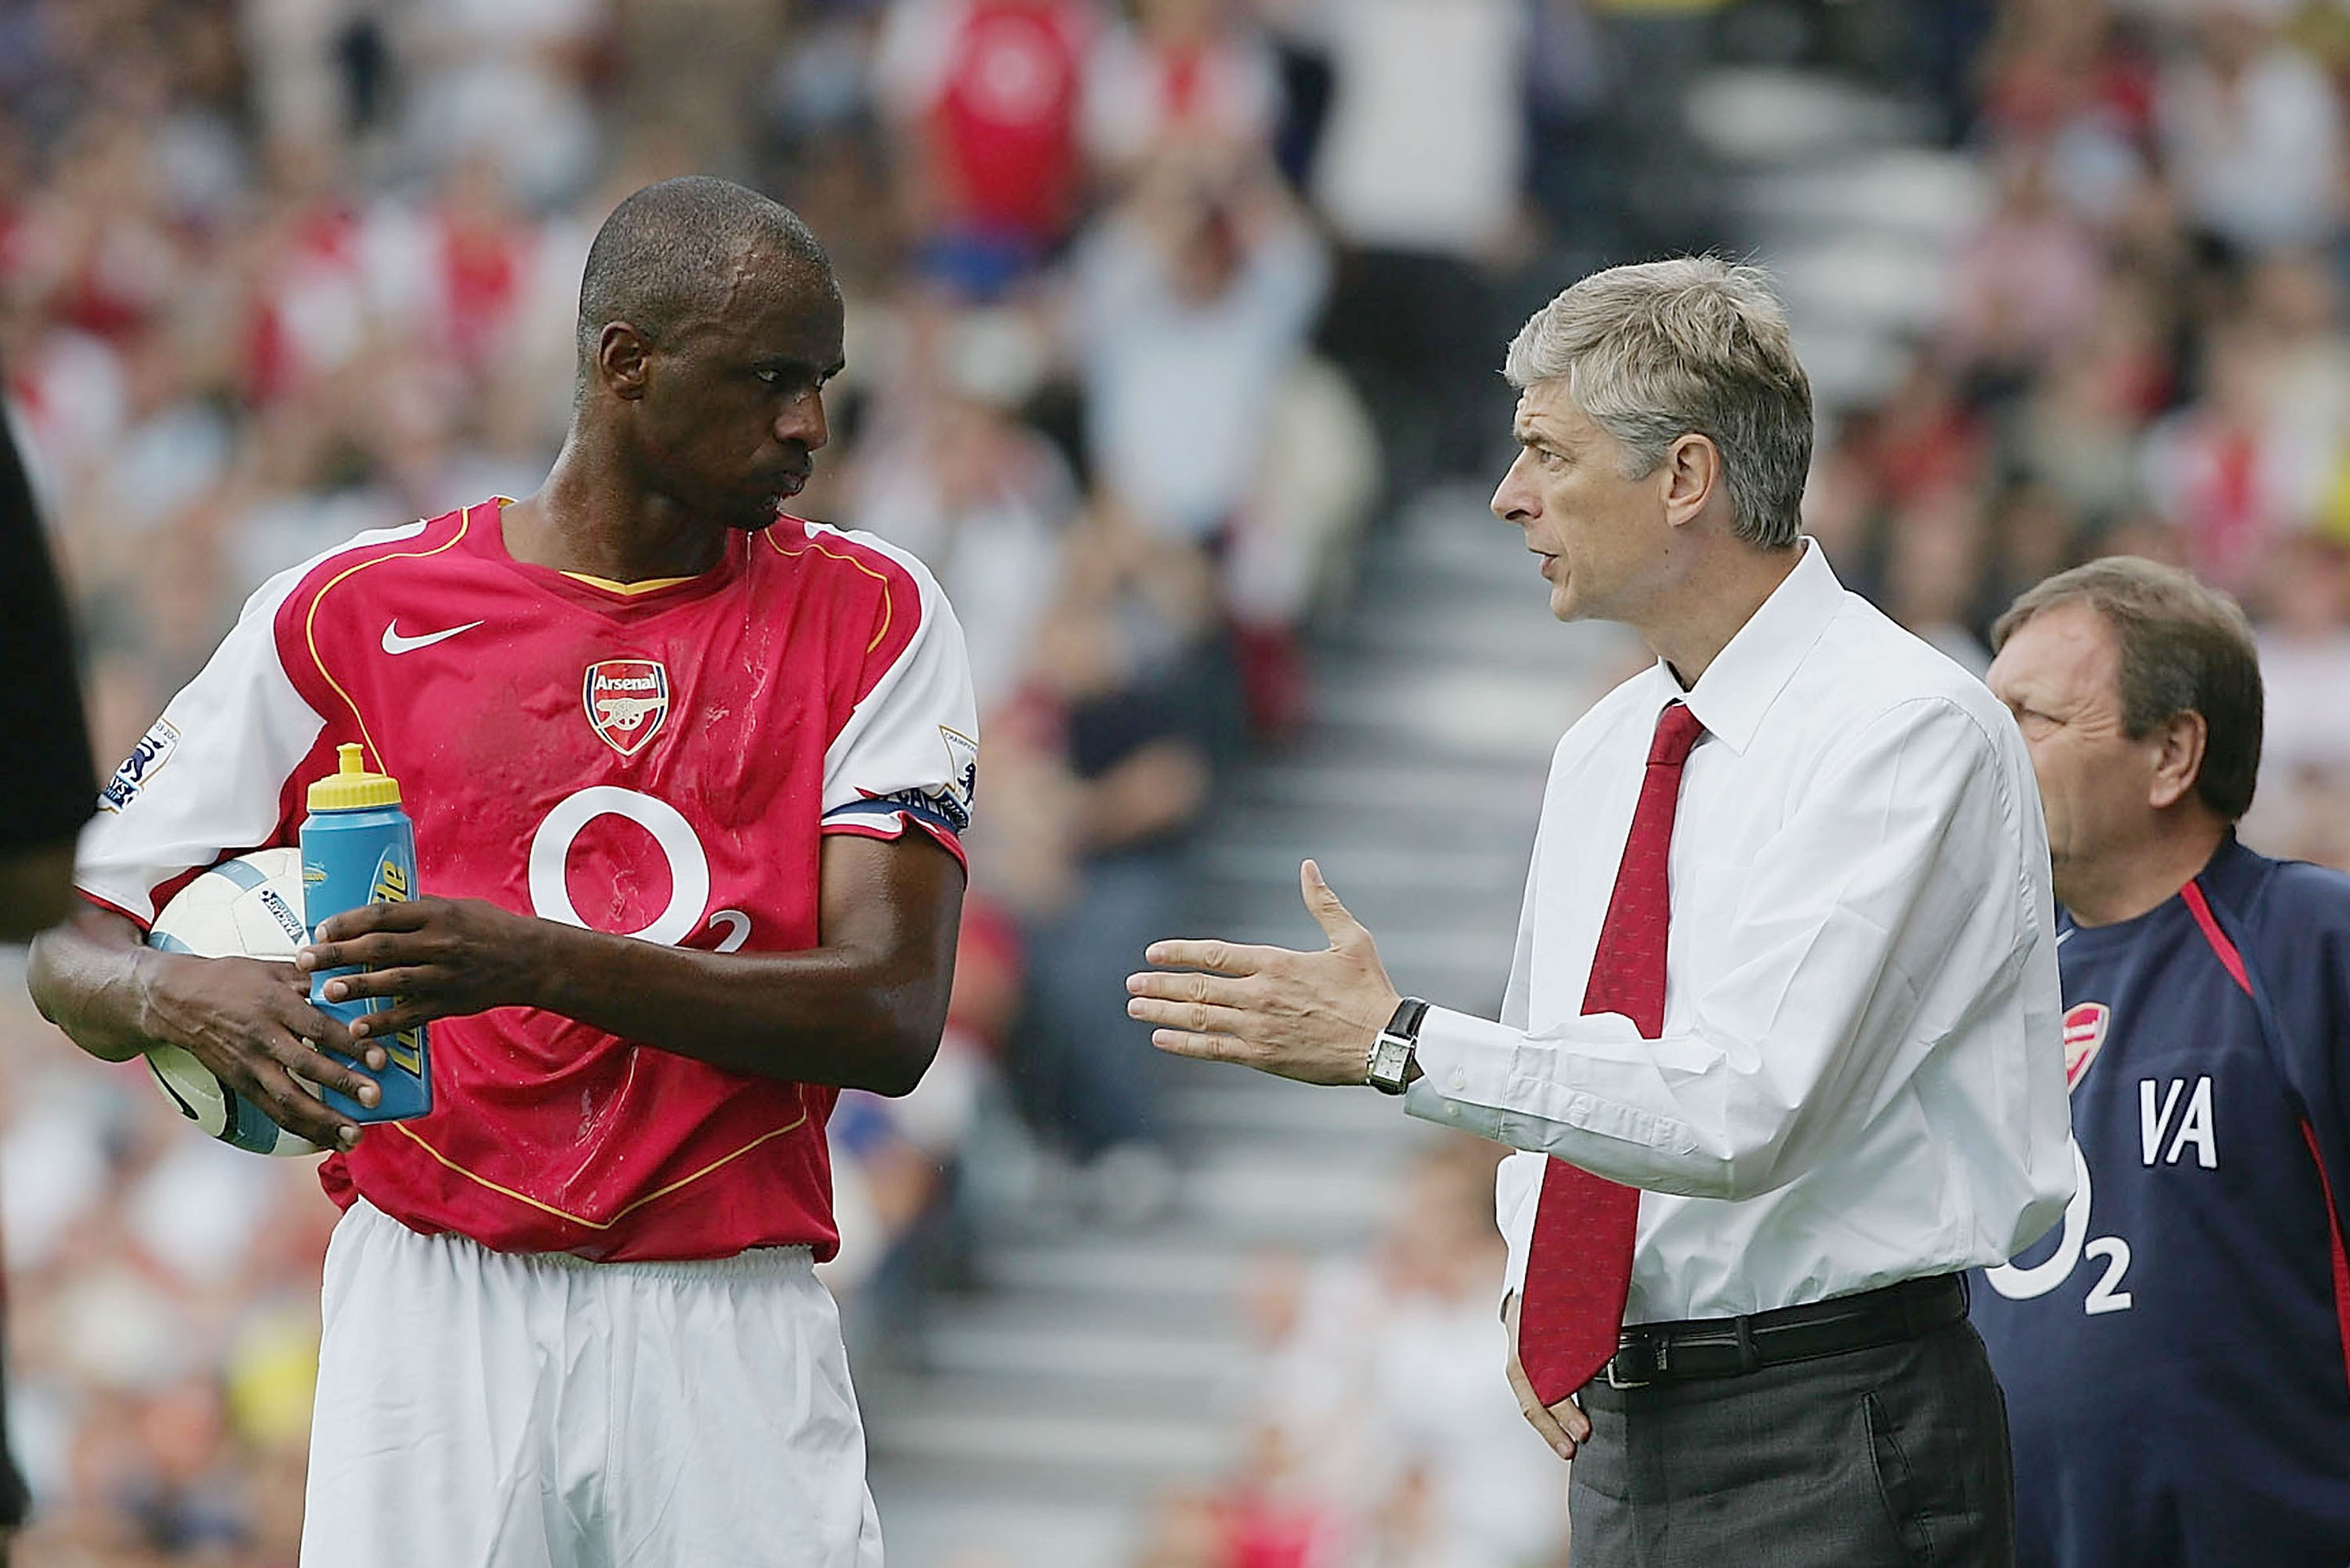 Arsene Wenger Endorses Patrick Vieira As A Future Arsenal Manager Bleacher Report Latest News Videos And Highlights